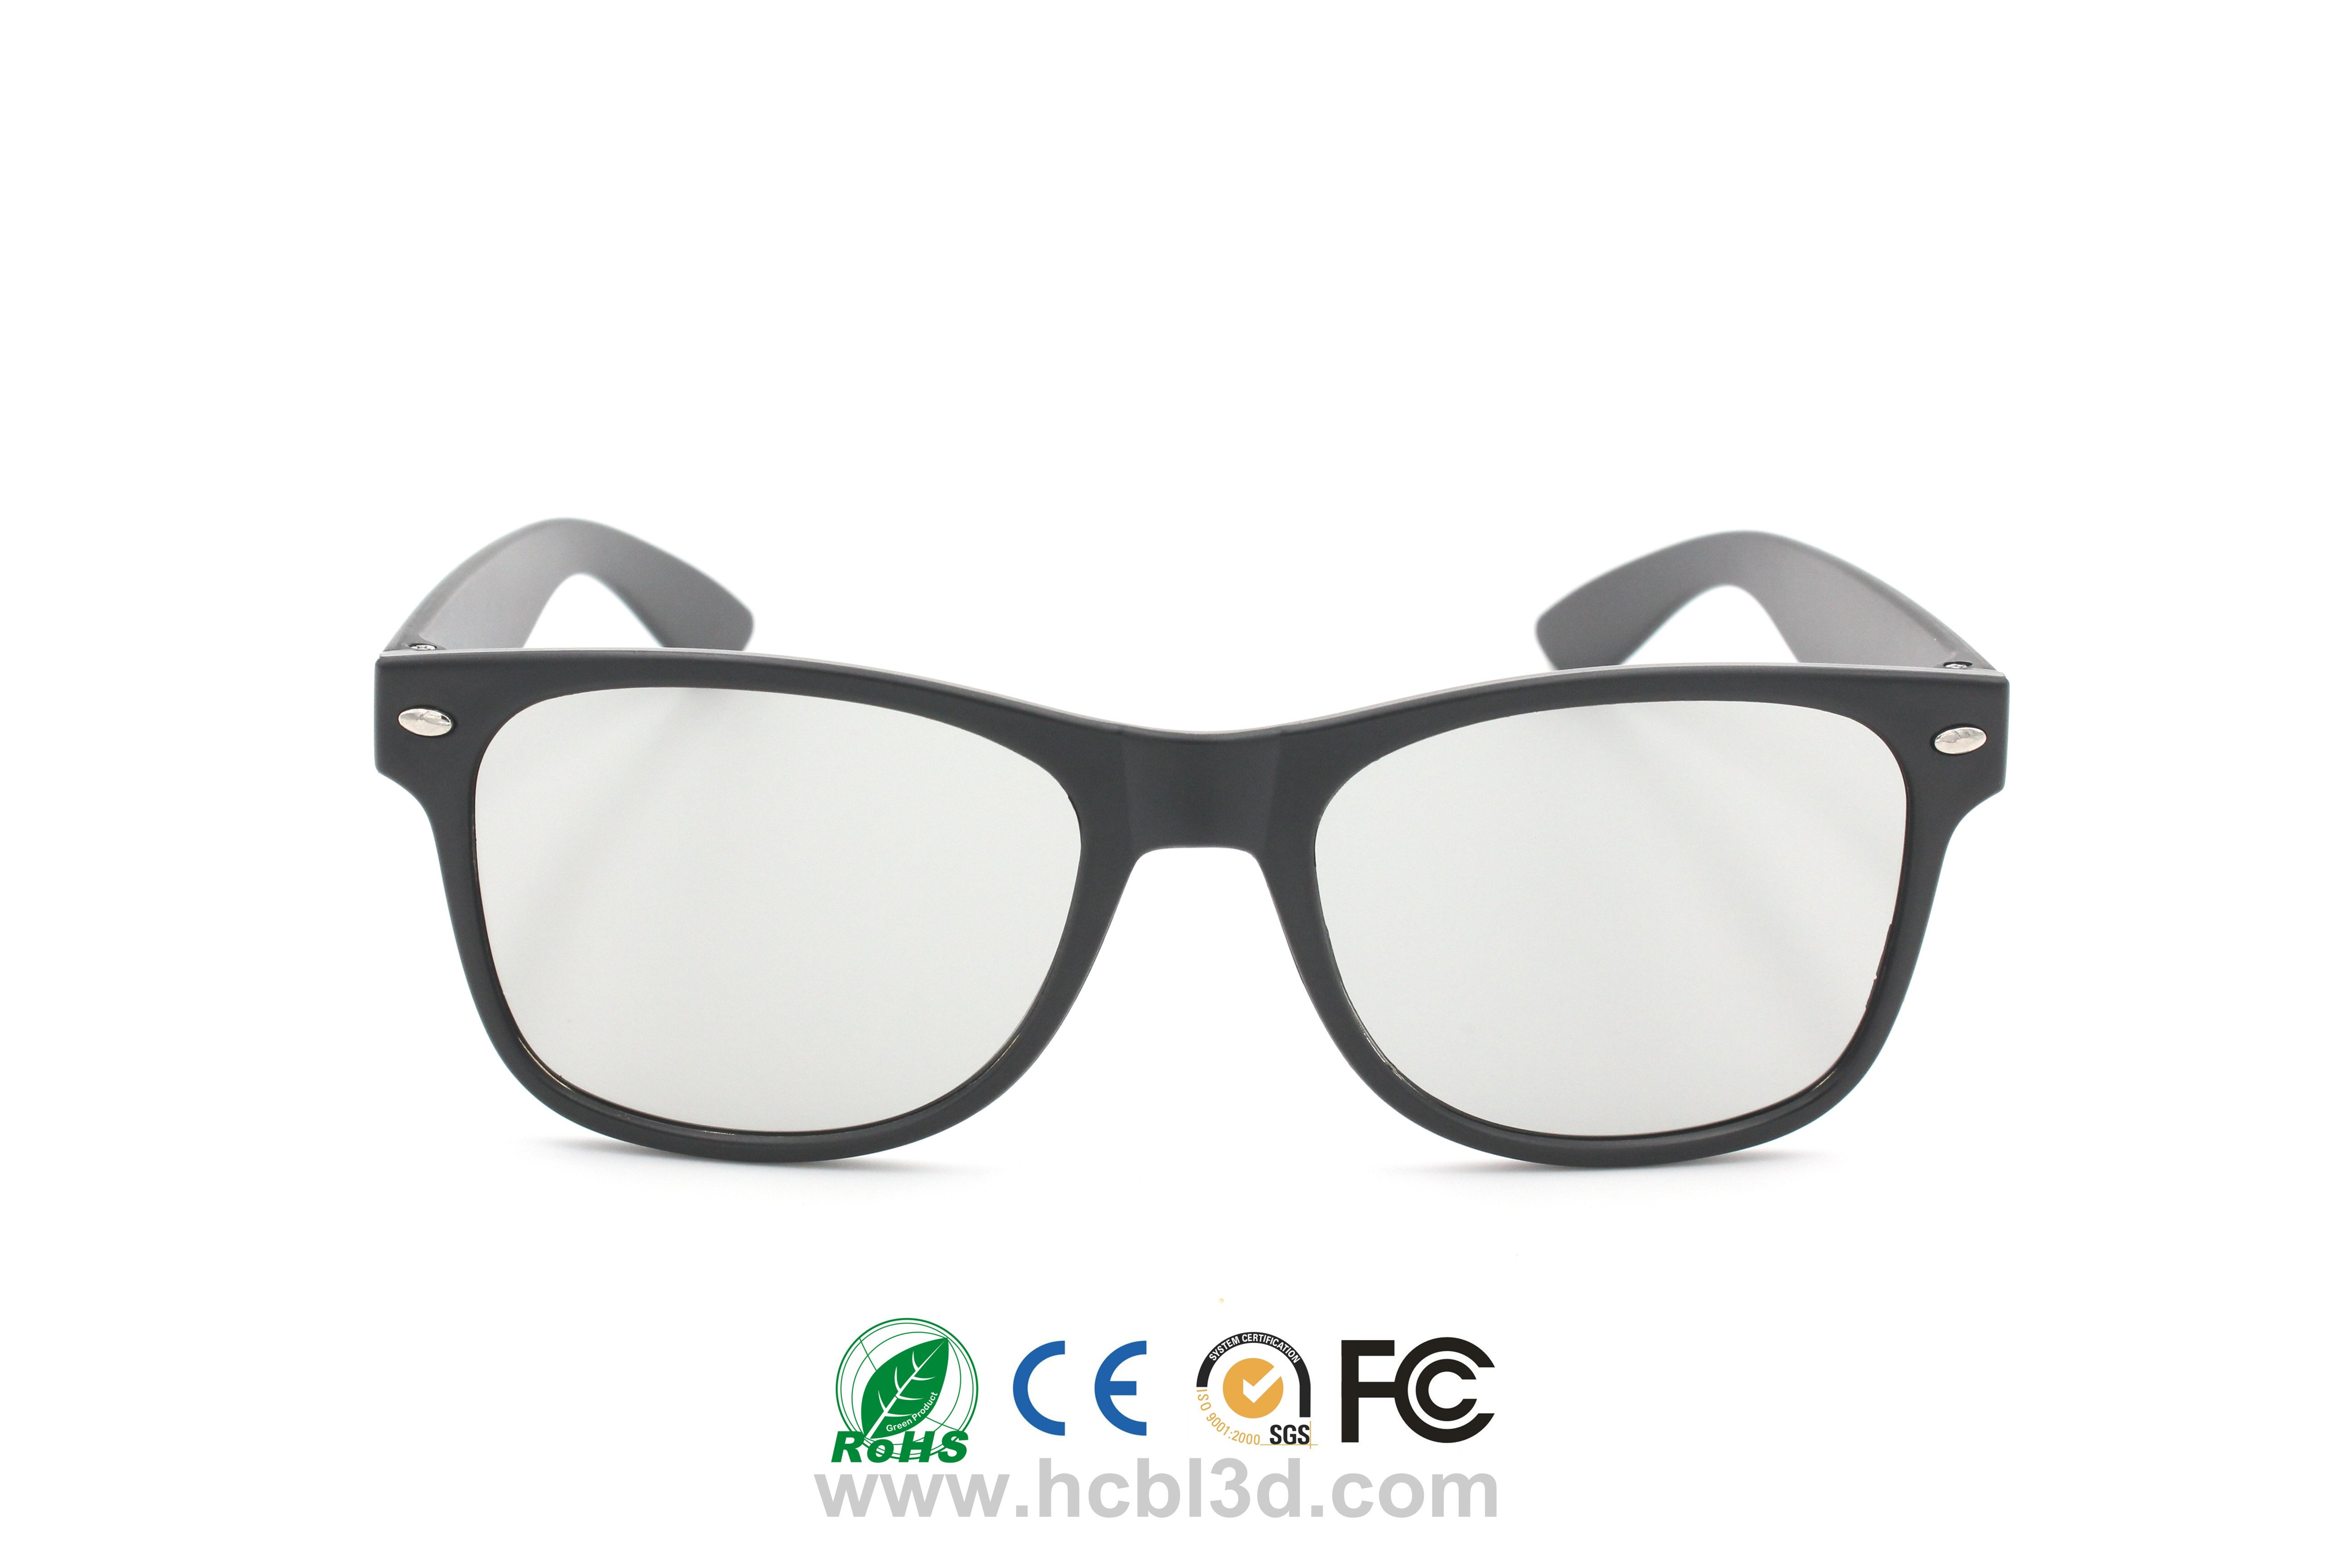 Reusable Polarized 3D Glasses for highly cost effective